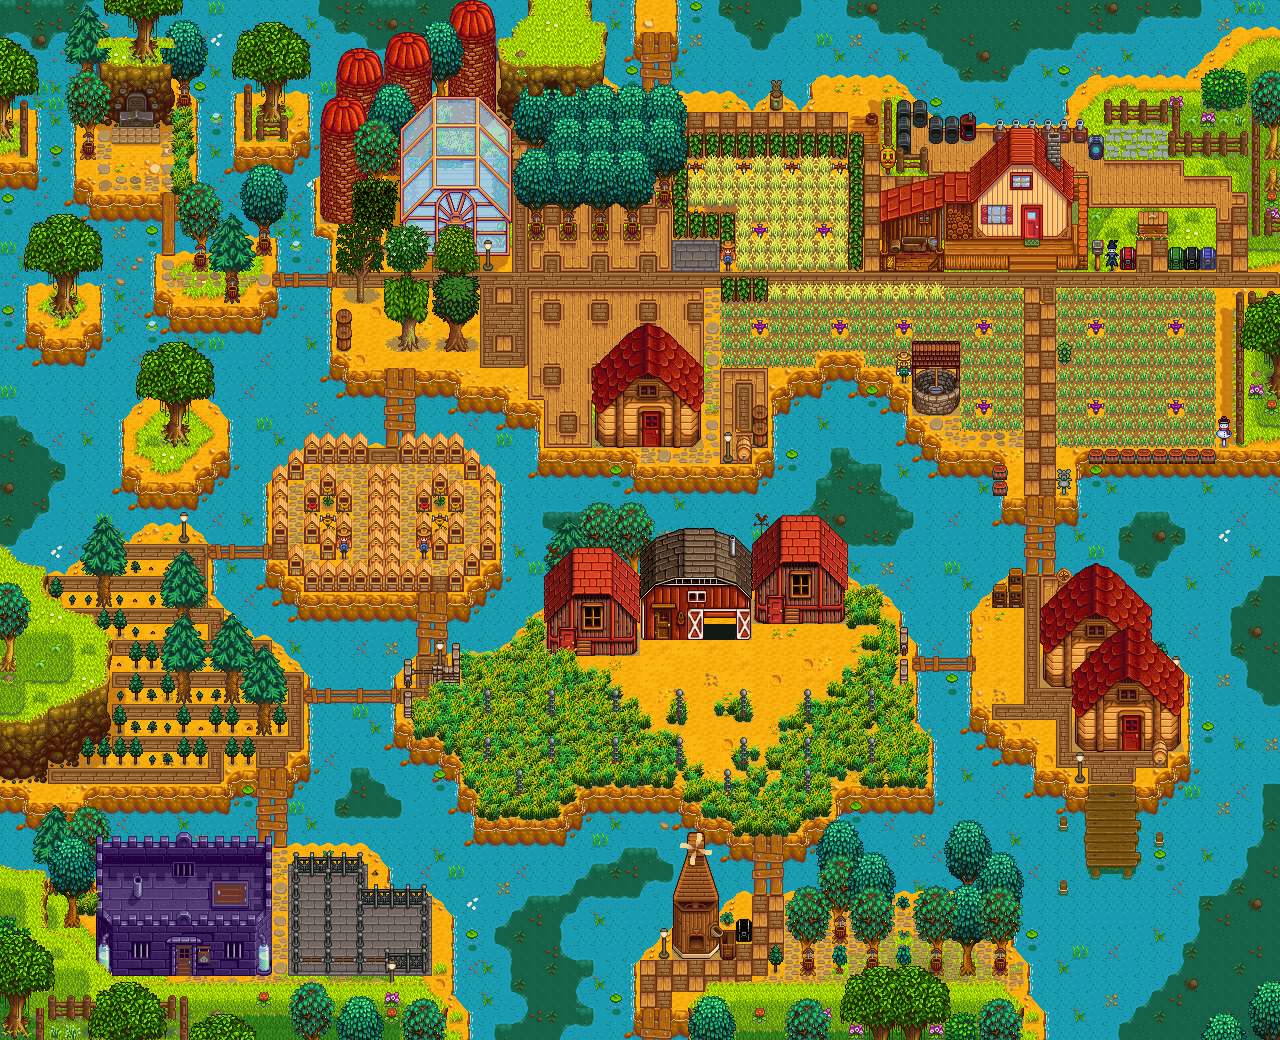 Rivermist Farm Summary Stardew valley farms, Stardew